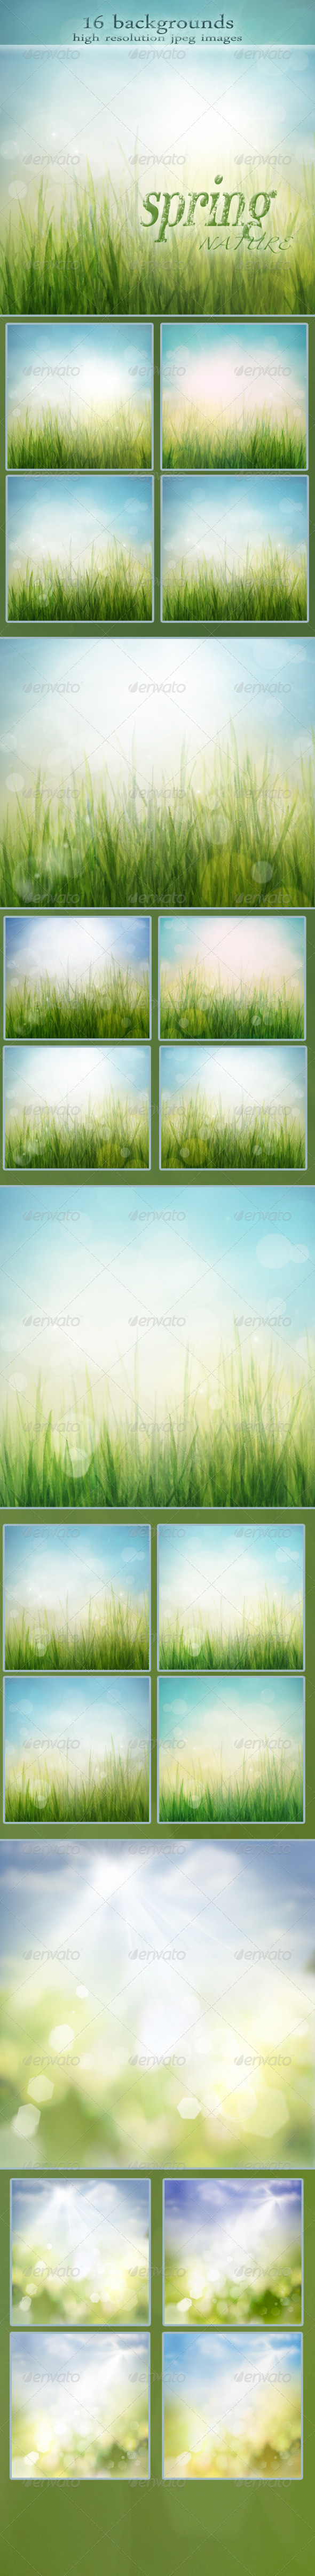 Nature Spring Backgrounds with Bokeh Effect vol.2 - Backgrounds Graphics